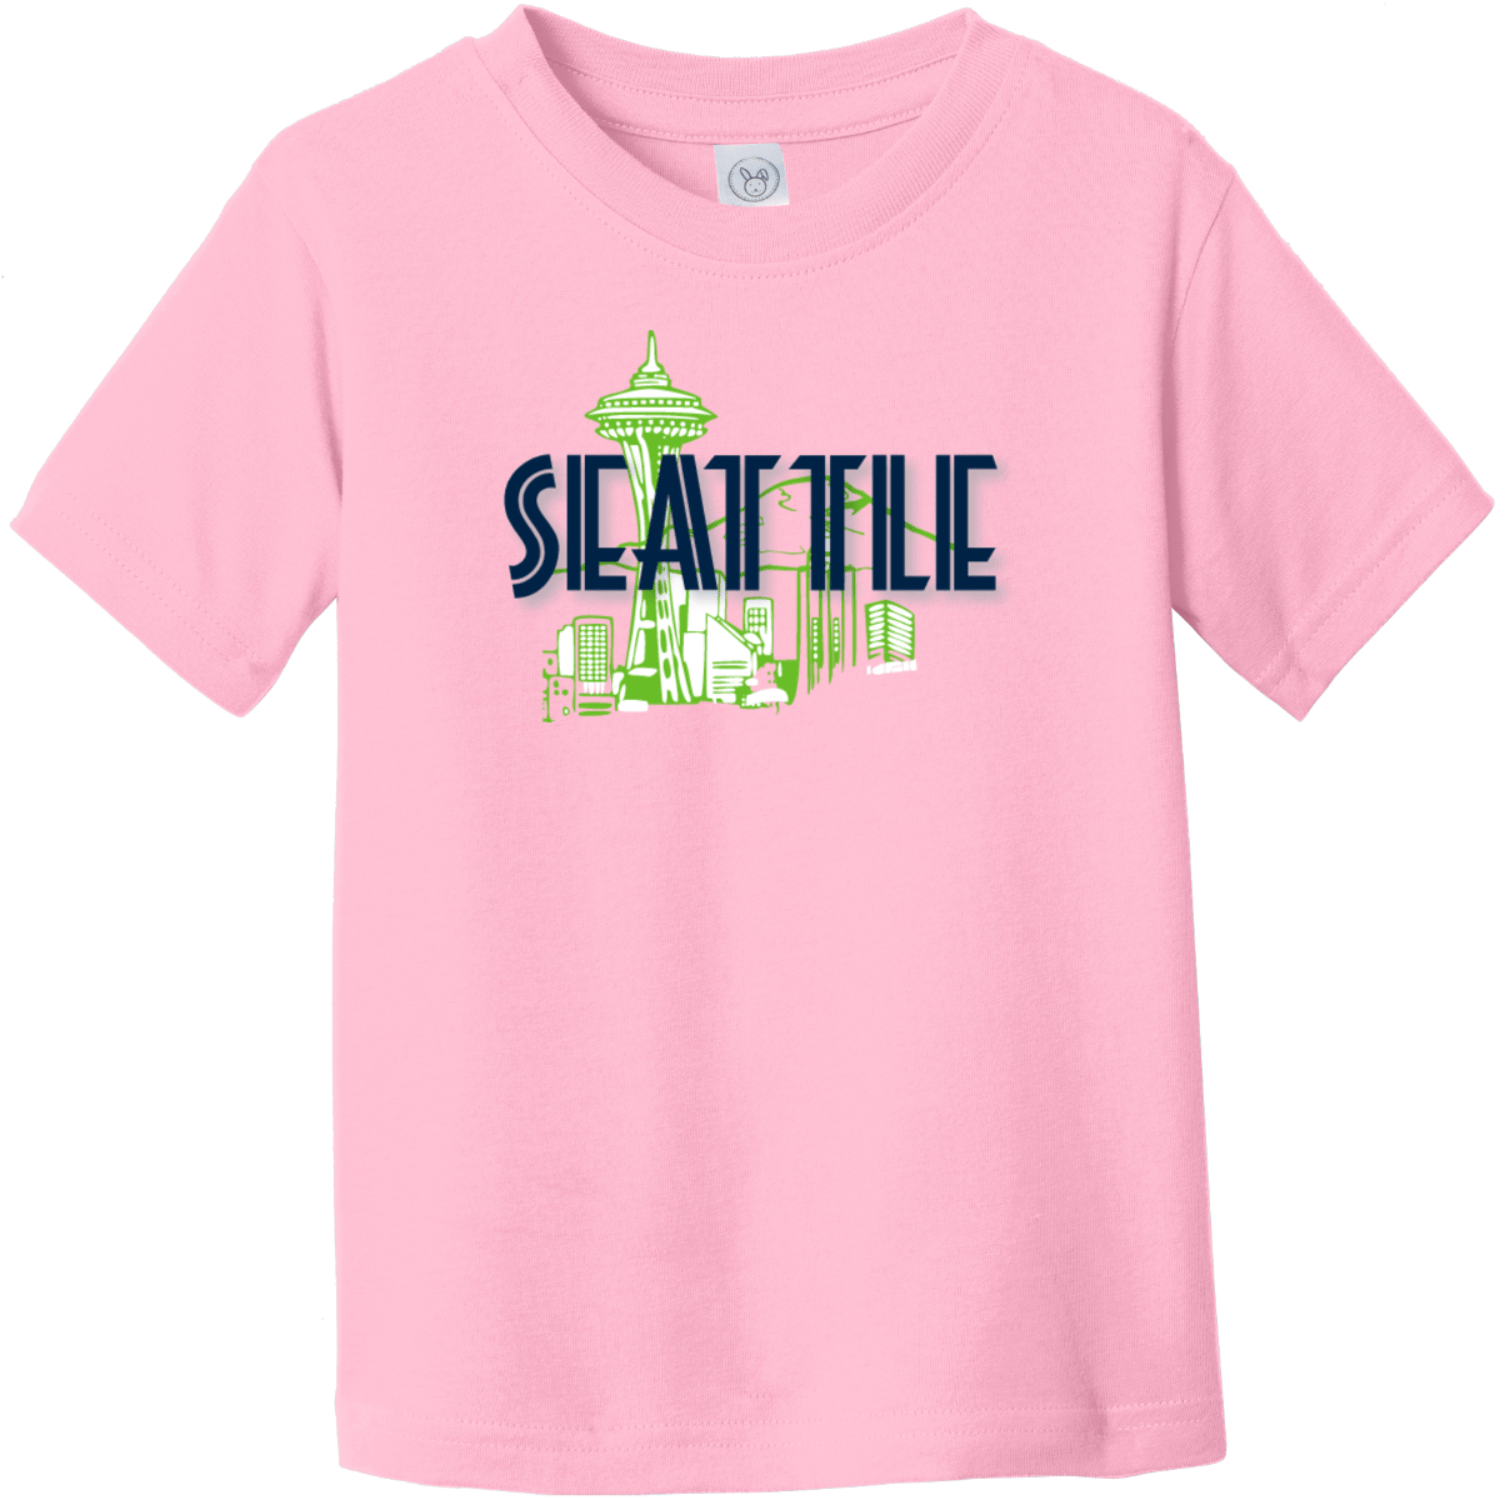 Seattle Space Needle Toddler T-Shirt Pink Rabbit Skins Toddler Fine Jersey Tee RS3321